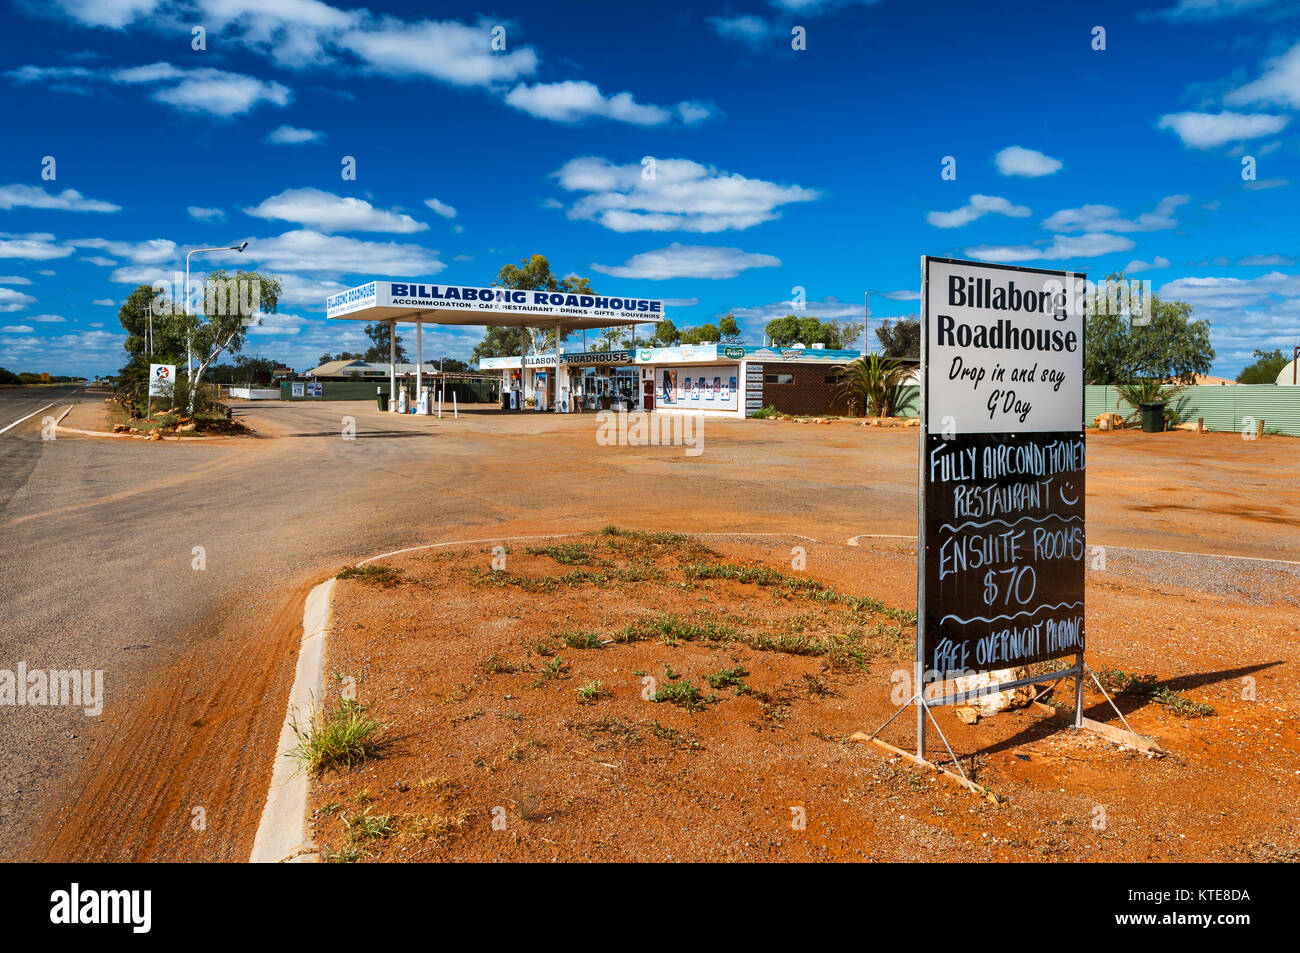 Billabong Roadhouse at the NW Coastal Highway in Western Australia. - Stock Image